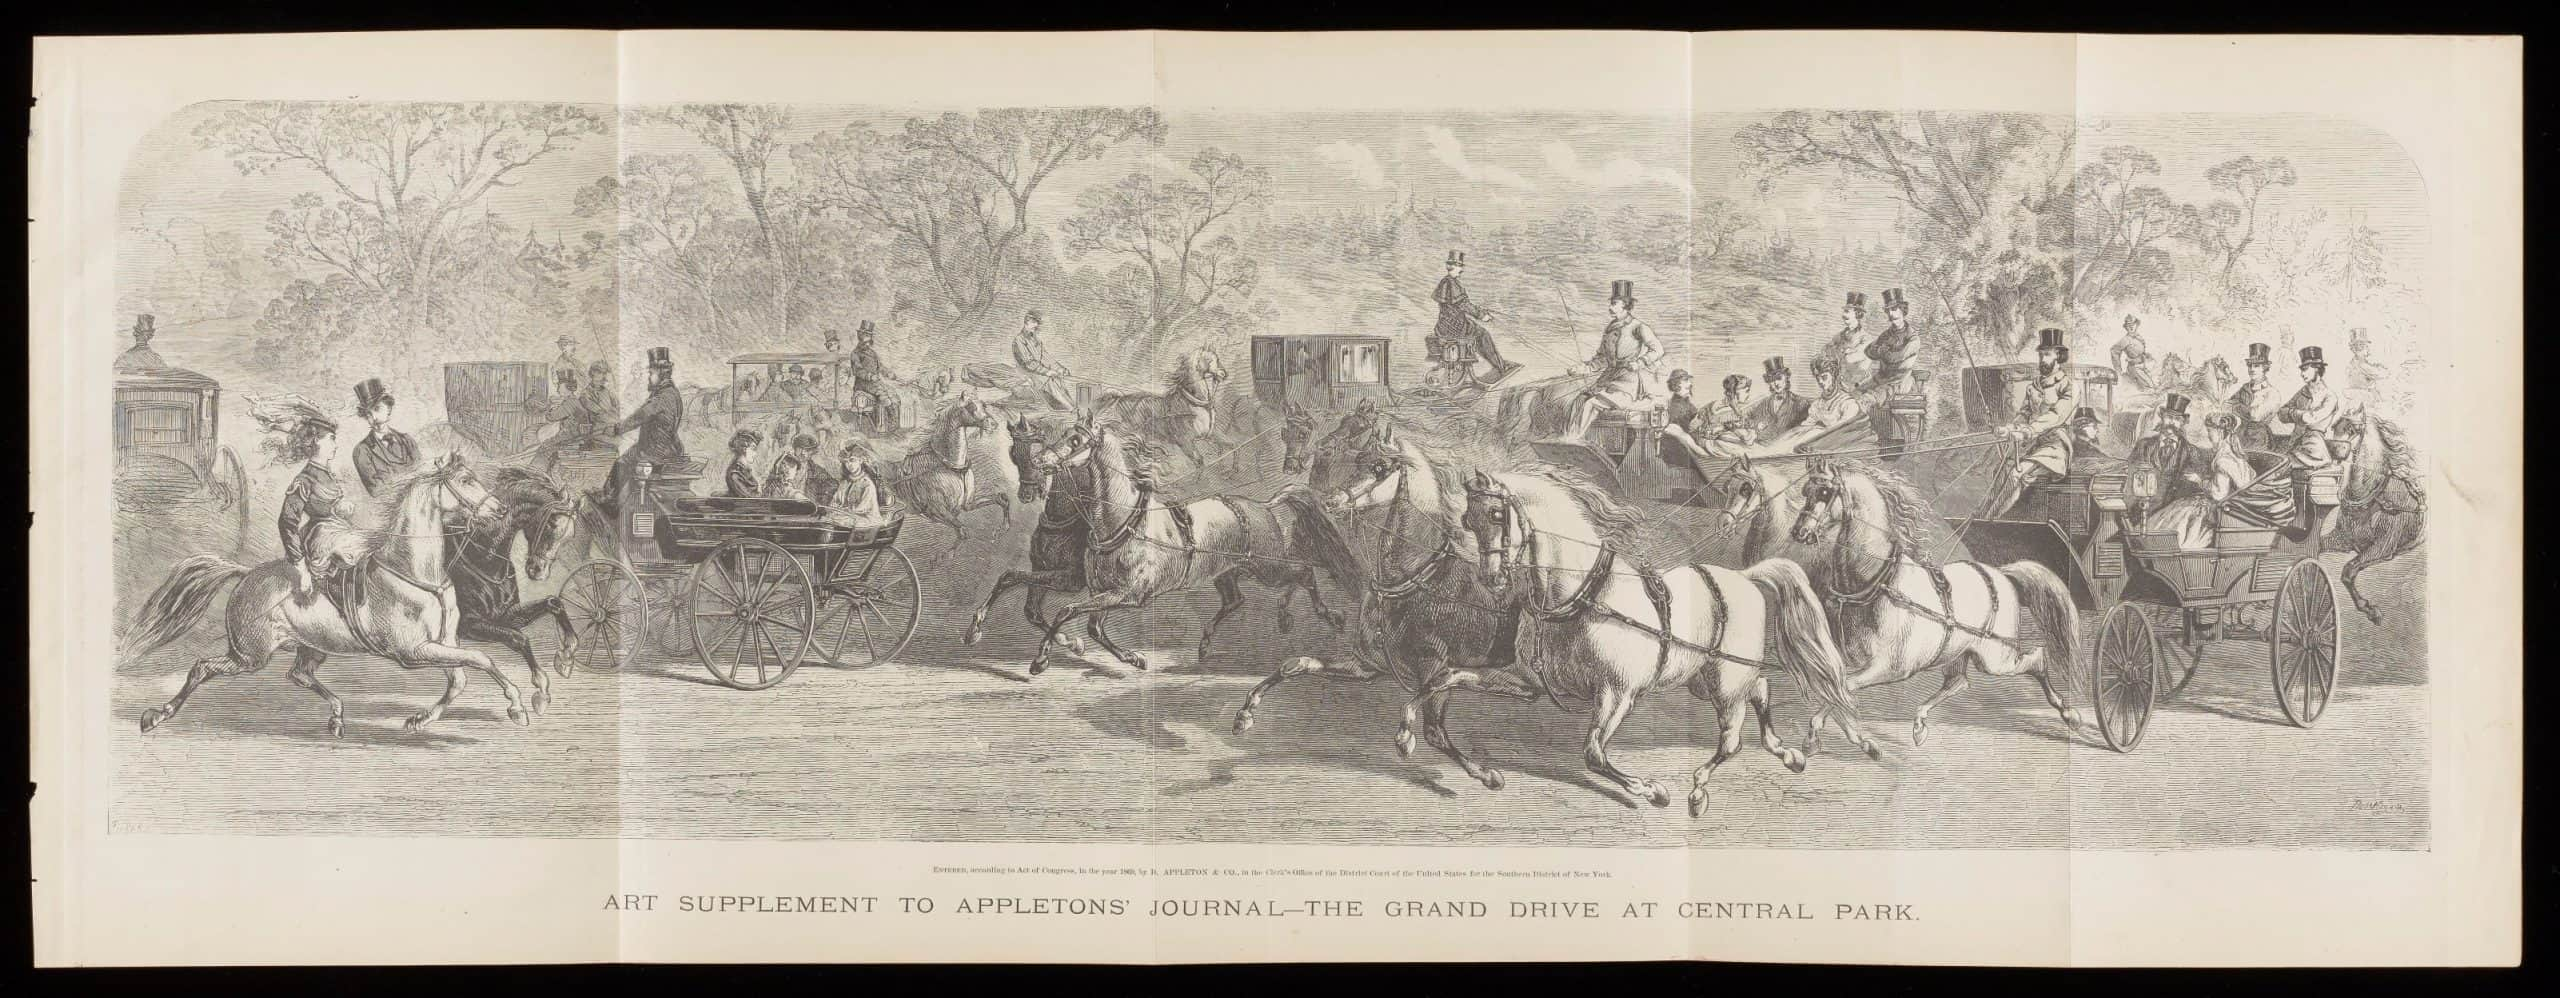 "The image is a black and white illustration and shows a scene of upper-class Victorians riding their horses and sitting in horse-drawn carriages on a mild day. The scene is set in Central Park, New York City. The caption for this illustration says ""Art Supplement to Appleton's Journal. The Grand Drive at Central Park."" The image is horizontal and long, indicating that it was a centerfold of Appleton's Journal."